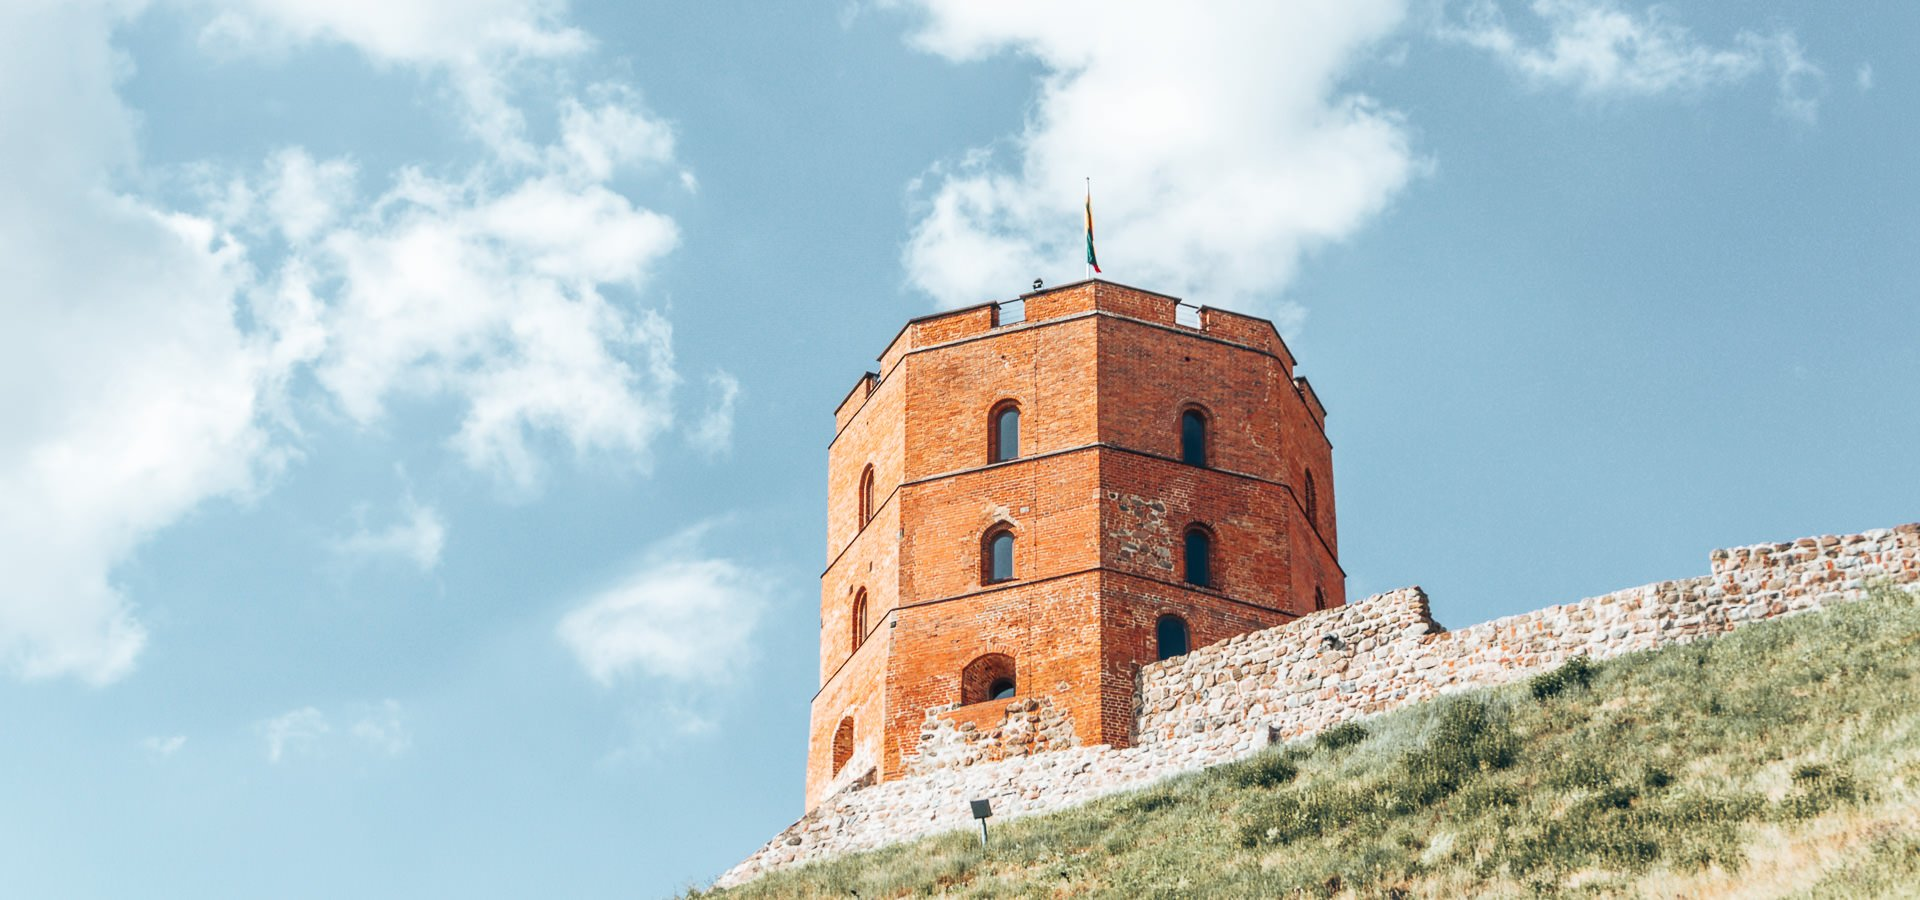 How To Make The Most Of 24 Hours In Vilnius   24 hours in vilnius 5